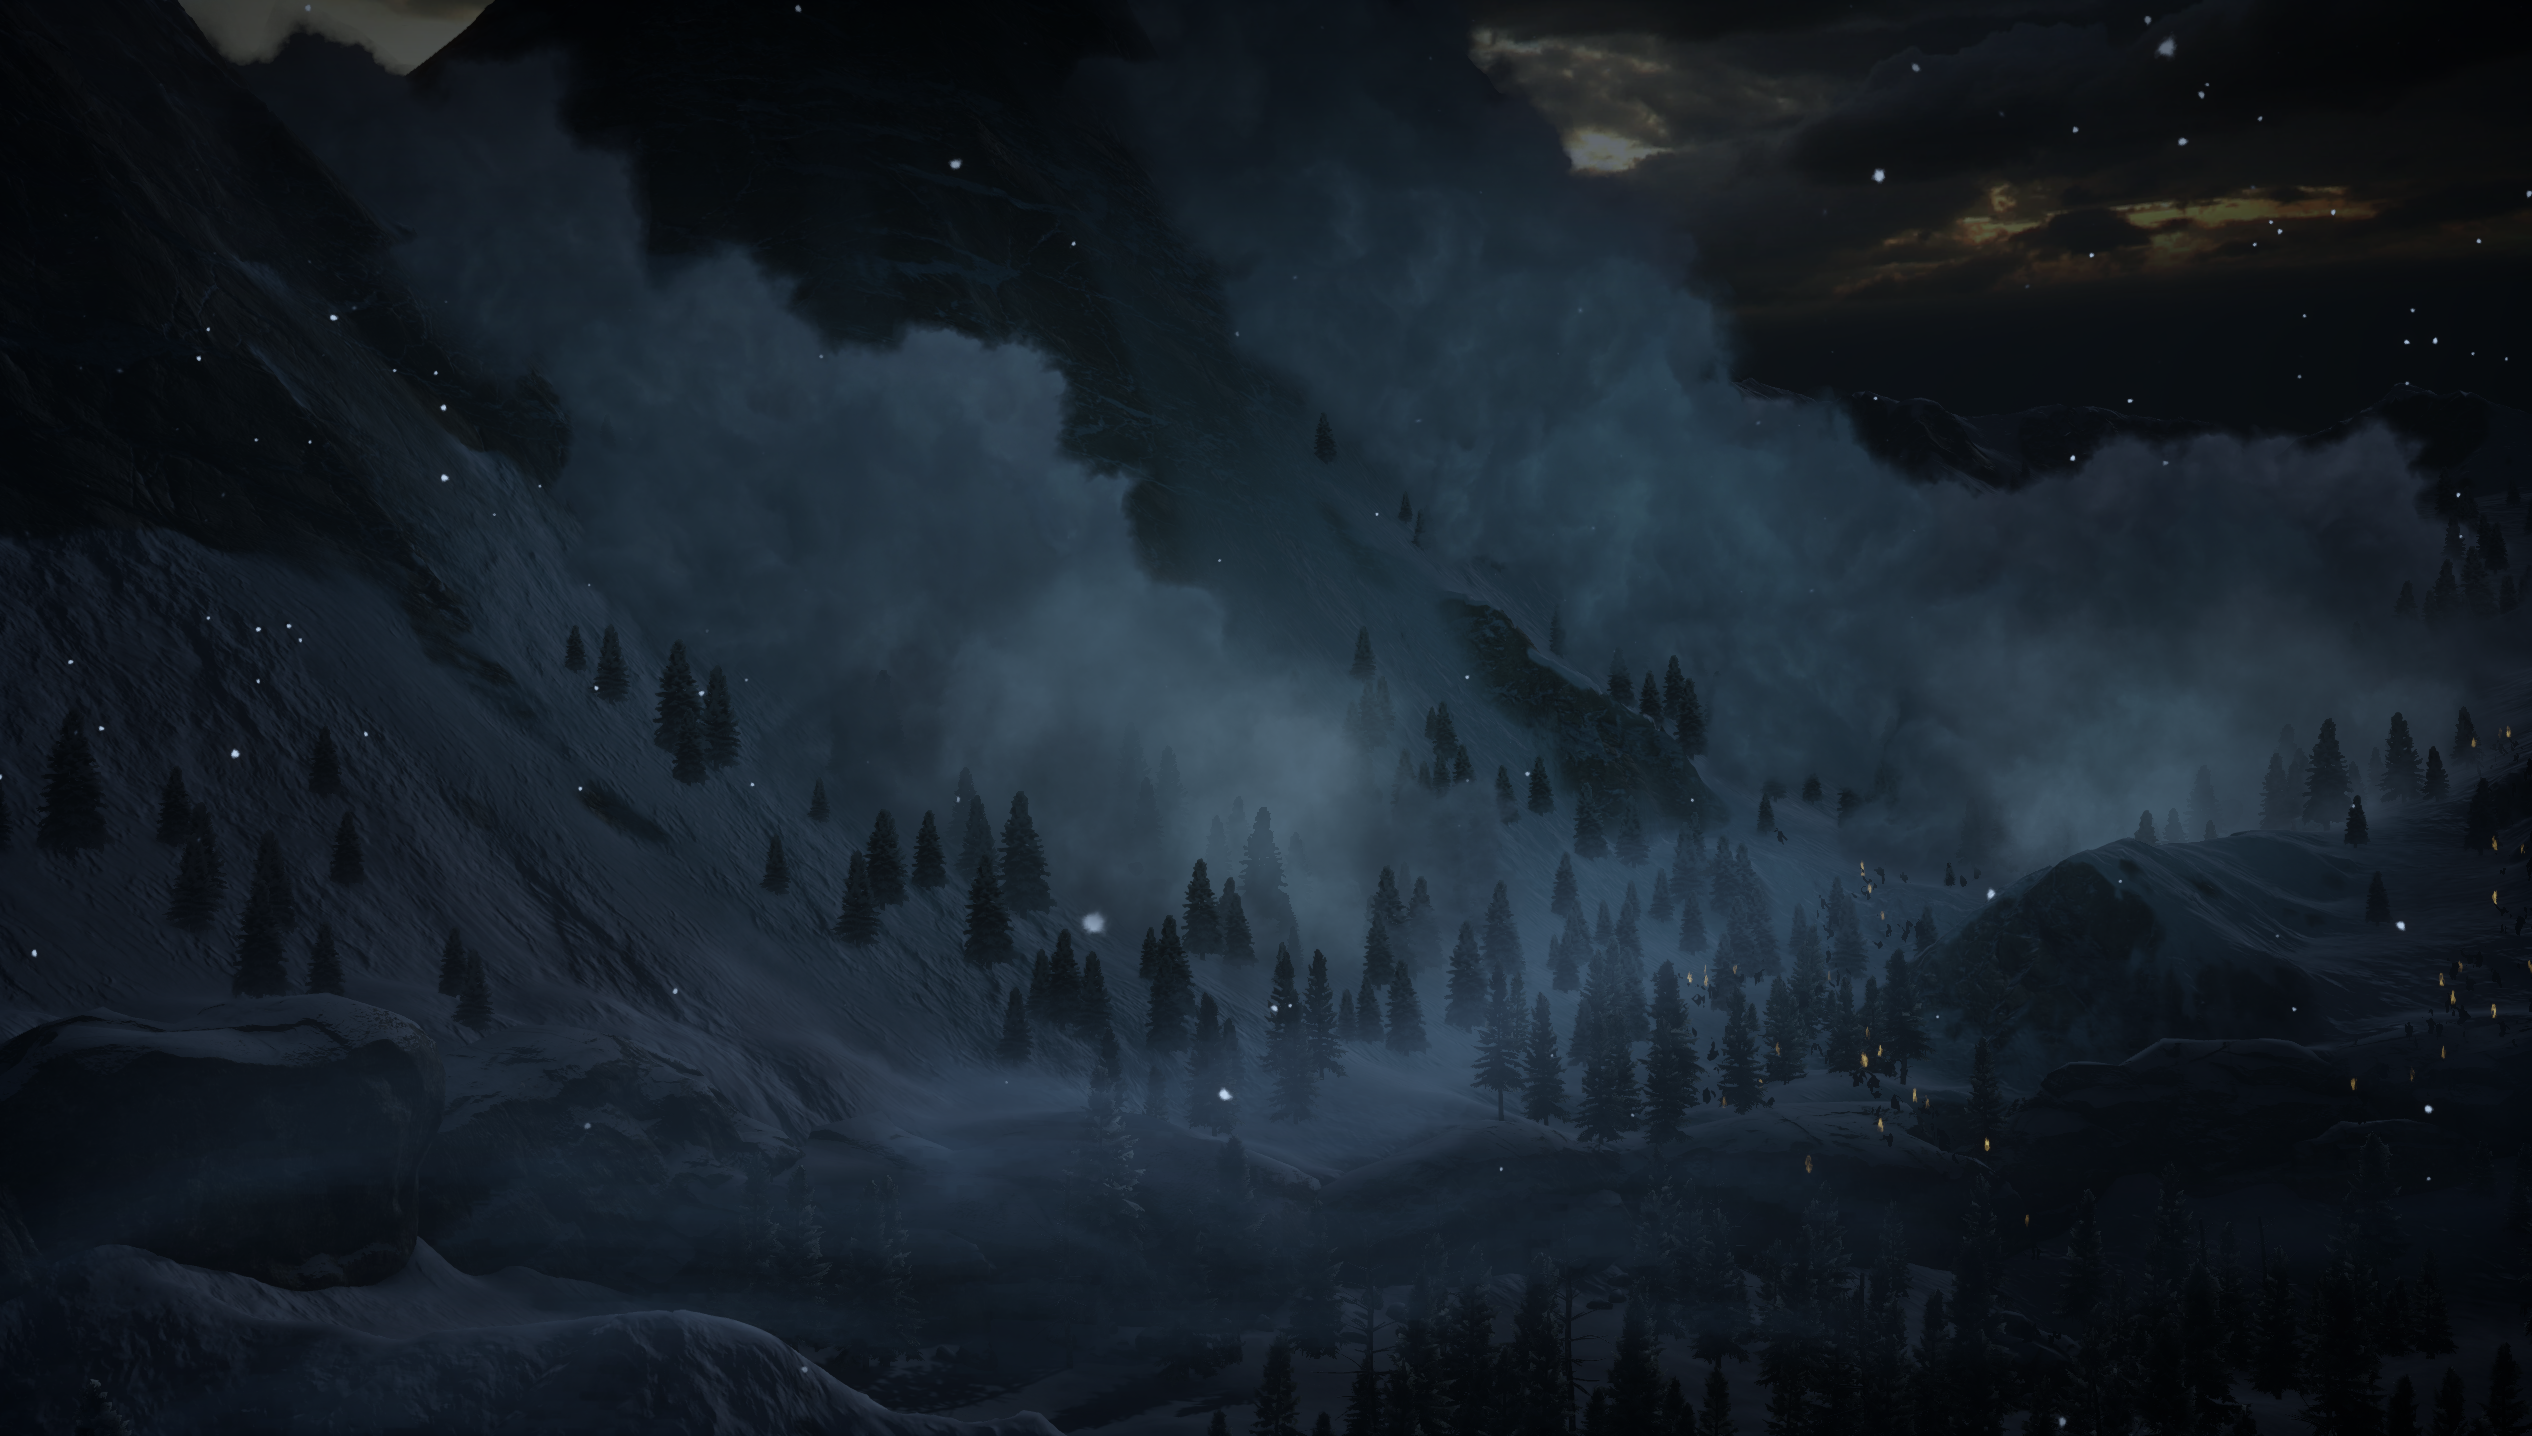 Dragon Age Inquisition Dragon Age Dark Blue Landscape Hill Trees Clouds PC Gaming Snow 2532x1436